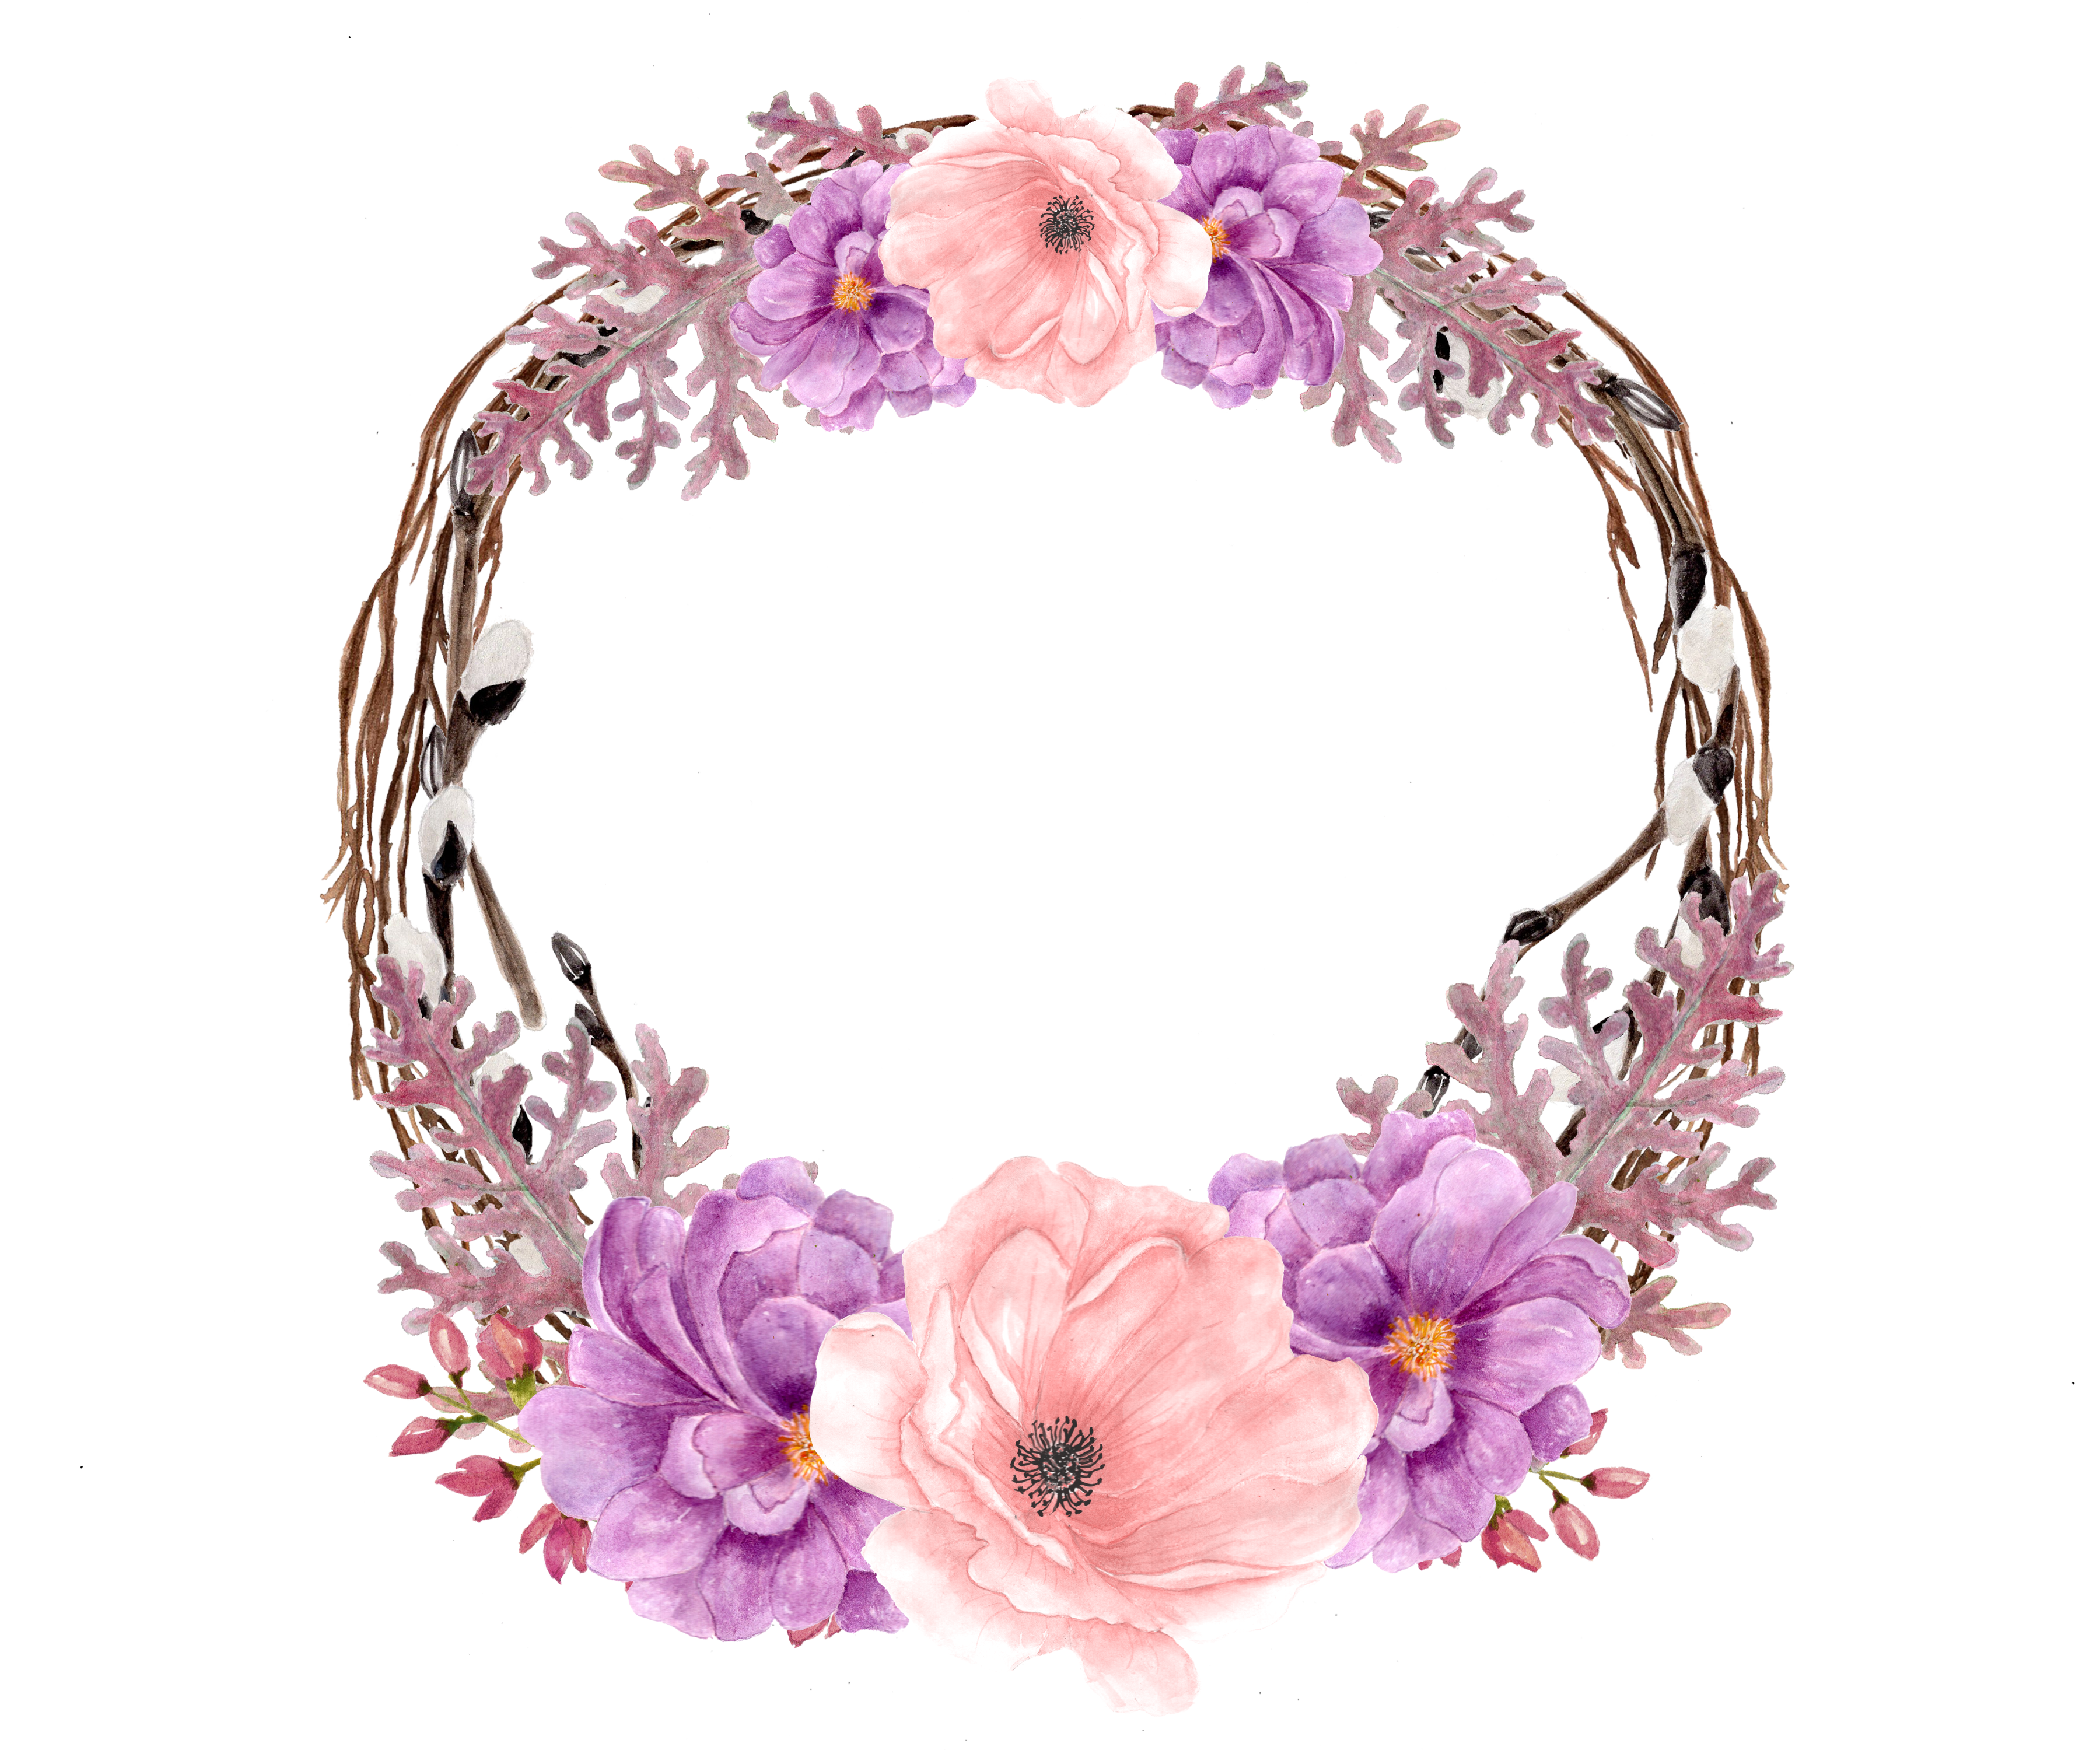 Pin by pearl on Flowers pics Purple wreath, Vector